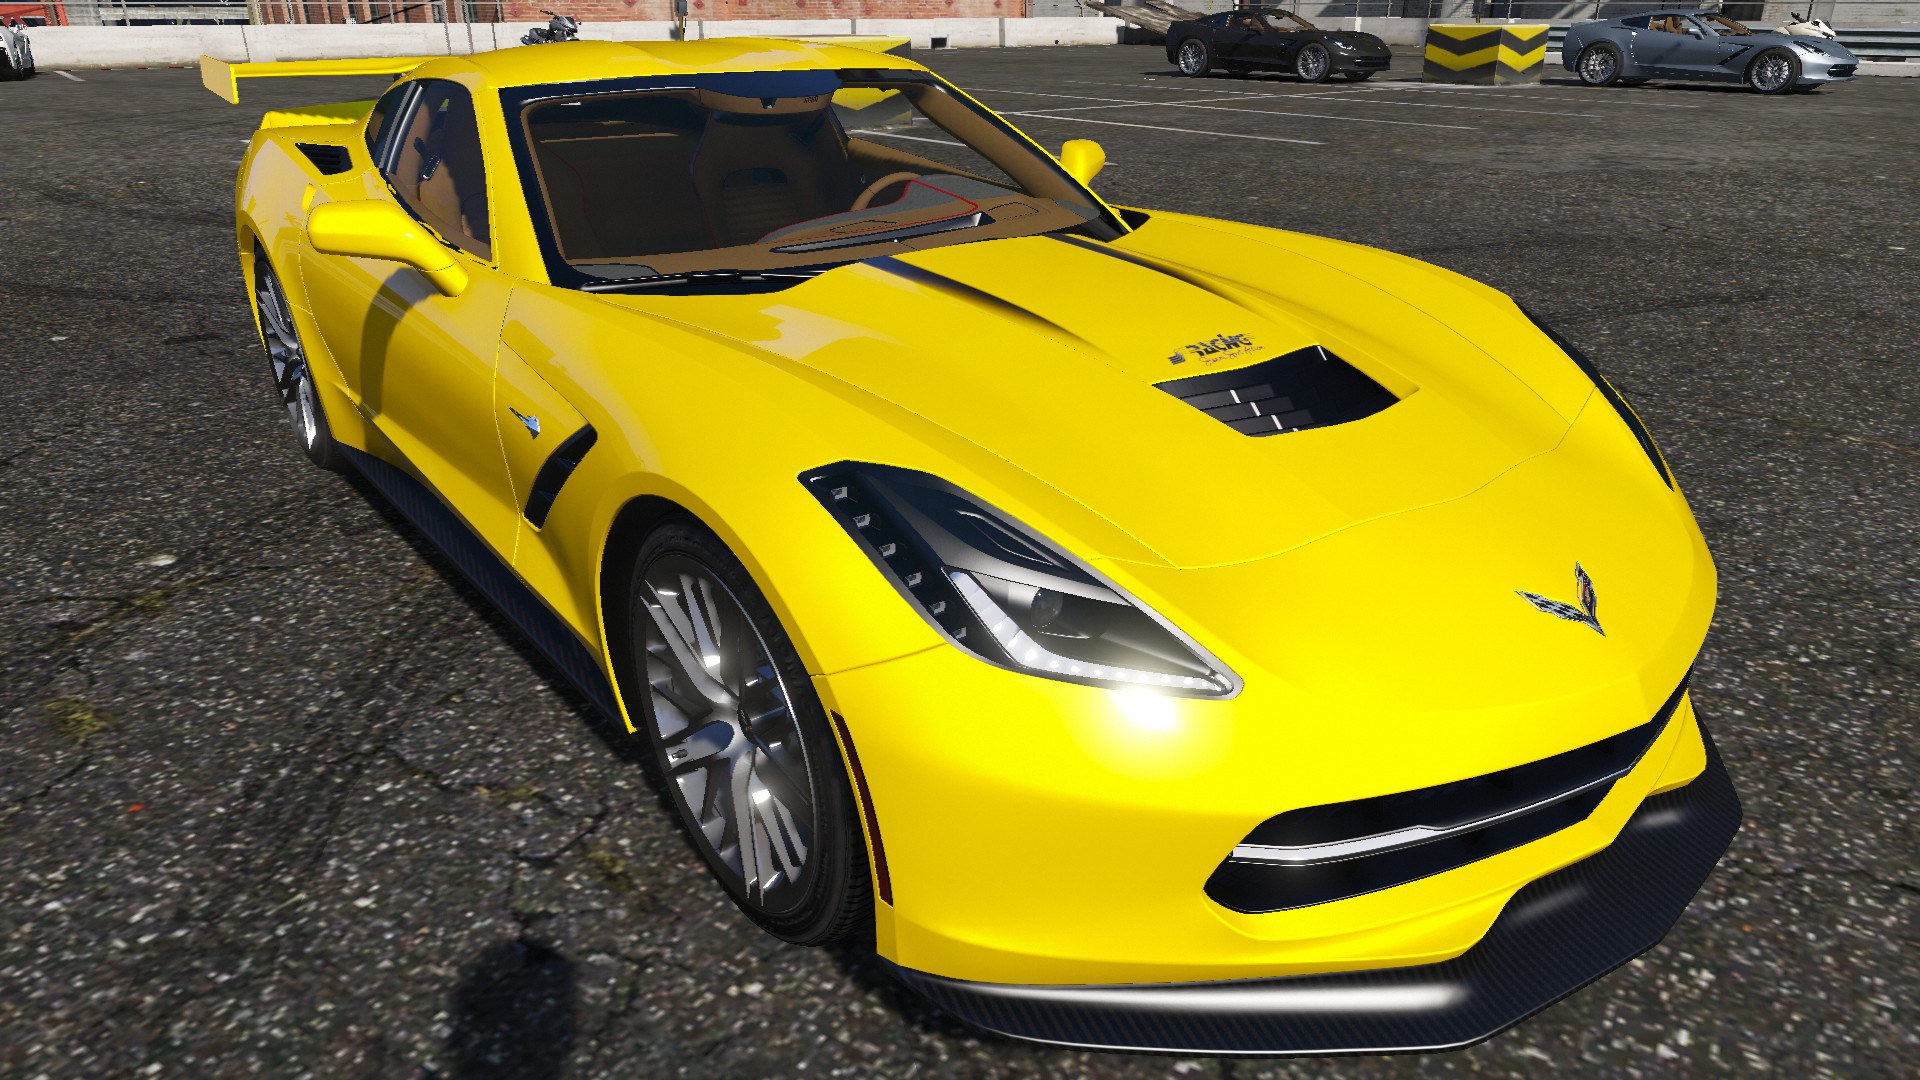 2014 Chevrolet Corvette Stingray C7 Gta5 Mods Com